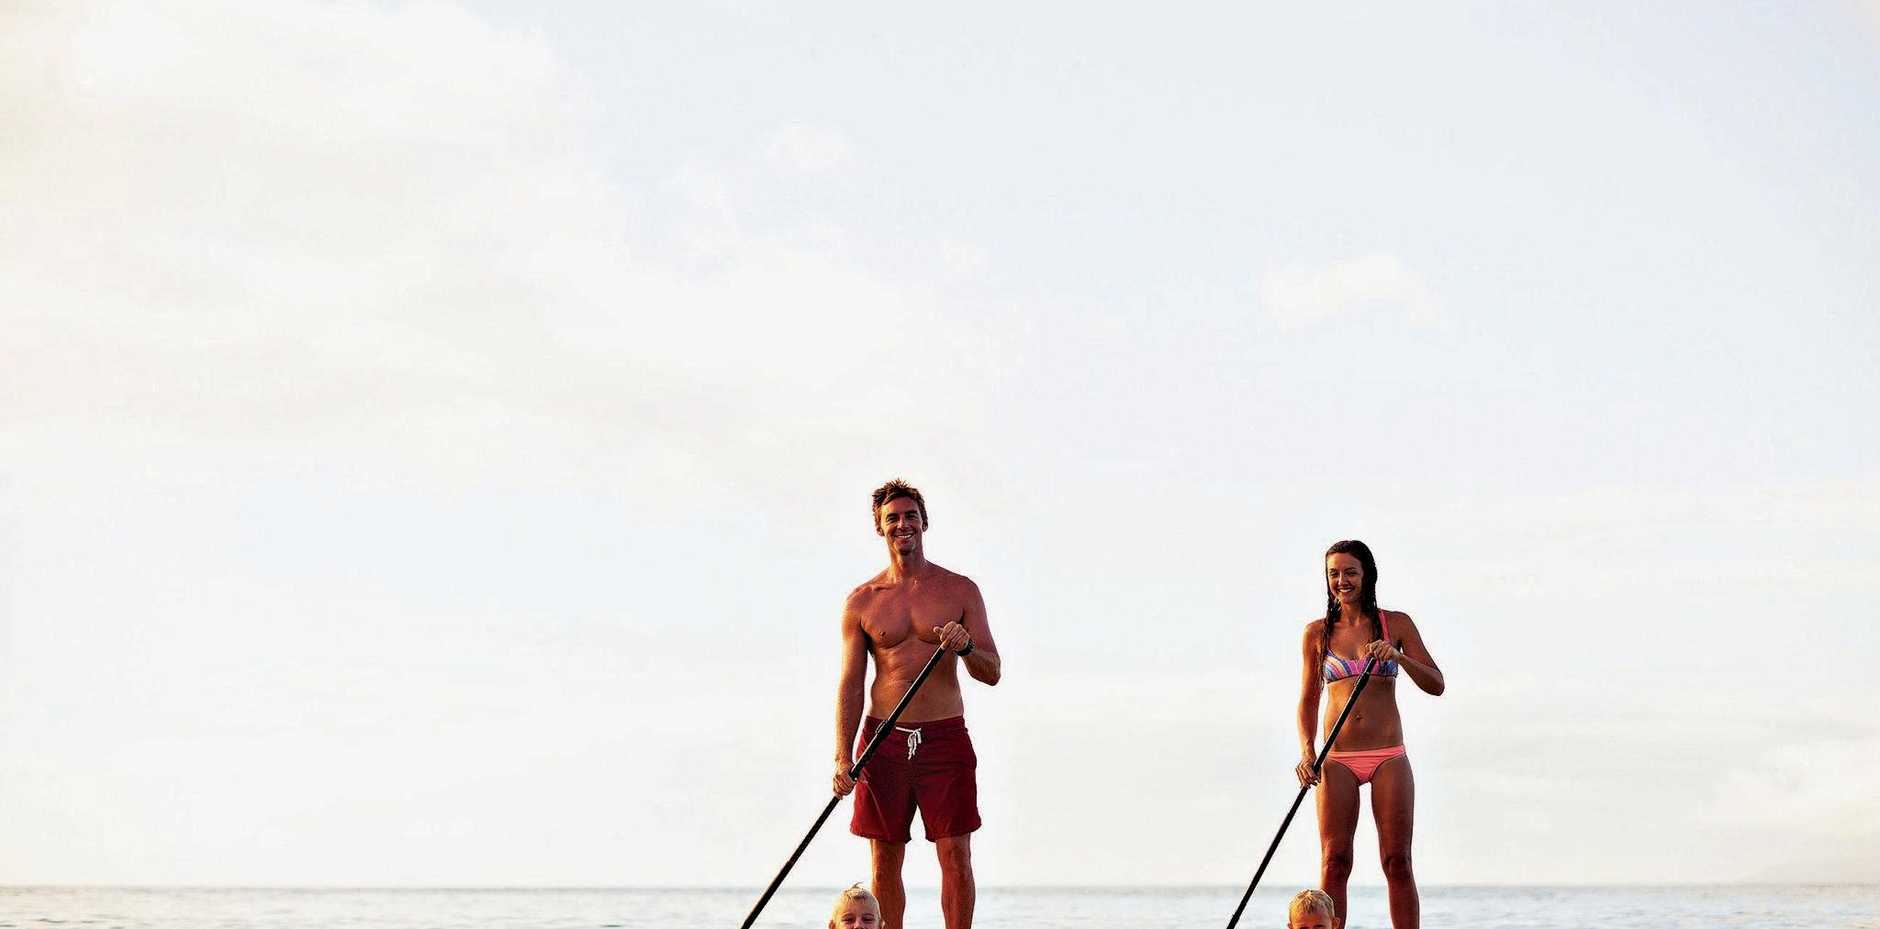 Stand up paddling is a great exercise for the family to do together.